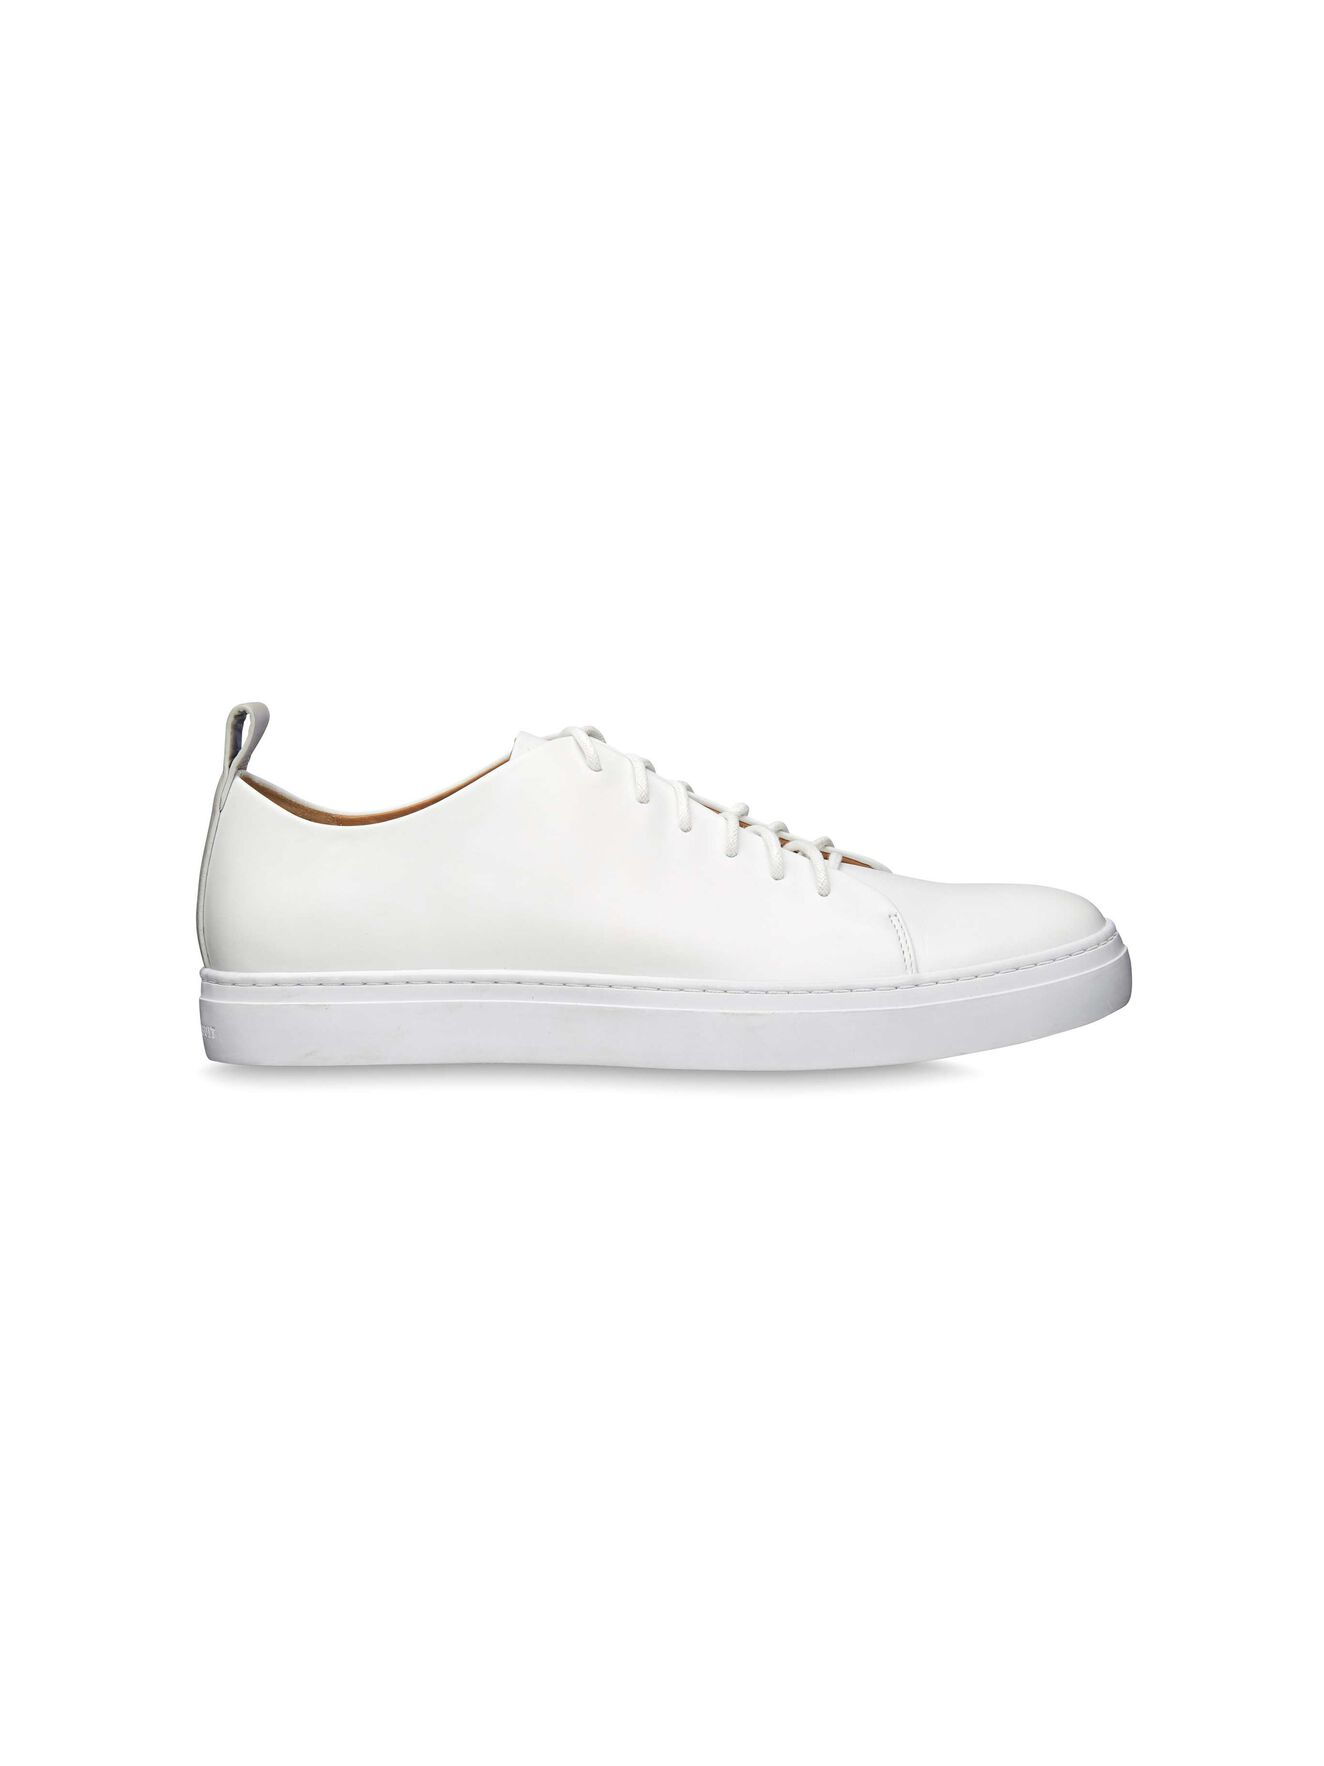 Brukare Sneaker in White from Tiger of Sweden